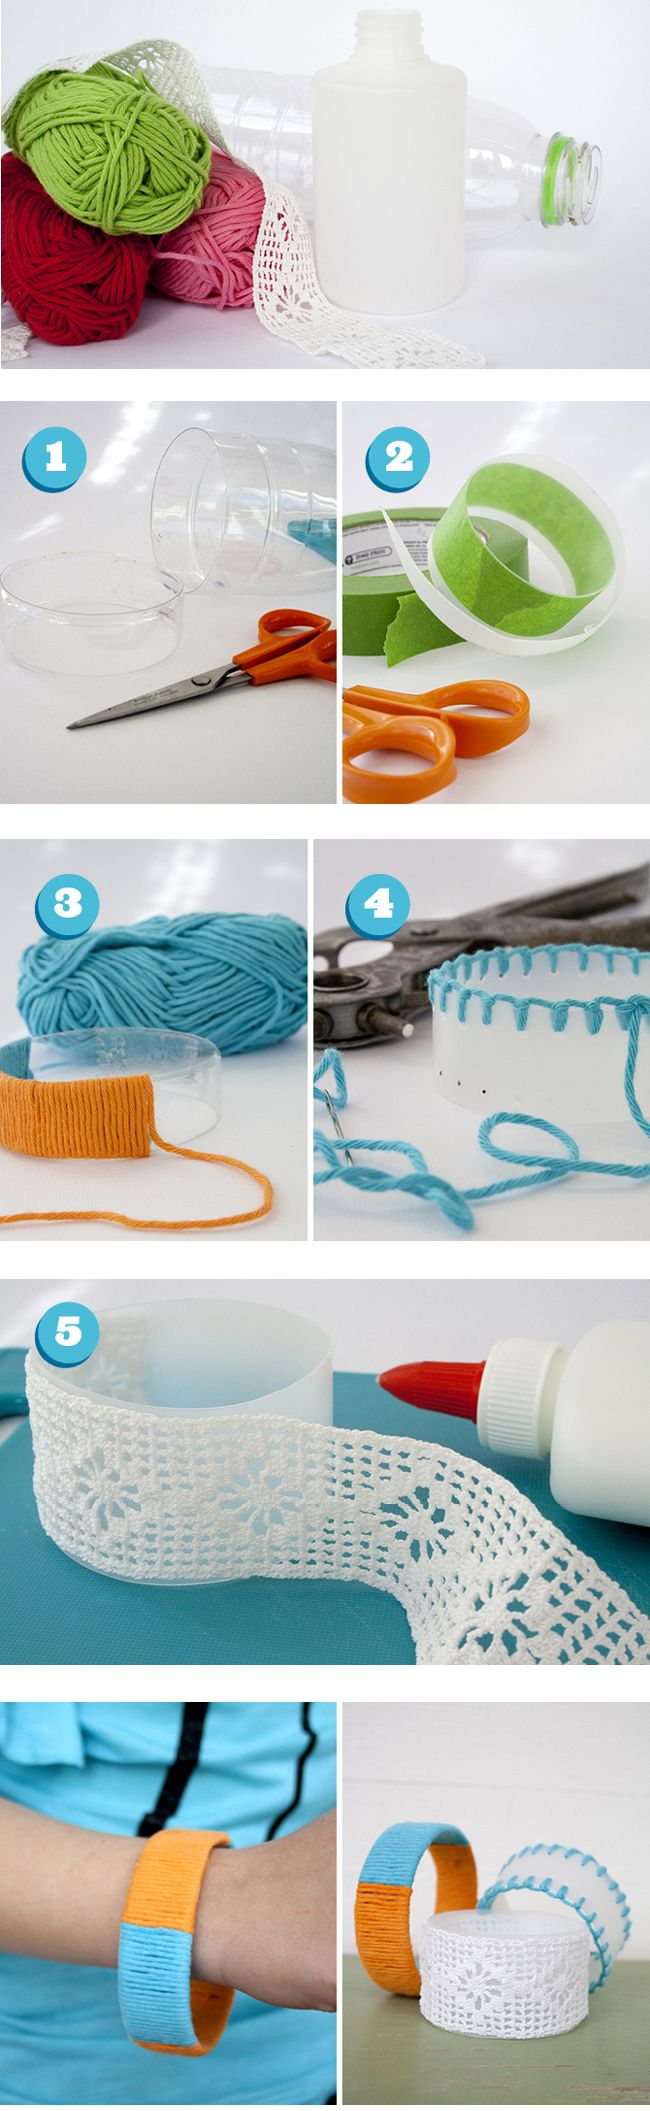 17 best images about best out of waste on pinterest for Things to make out of plastic bottles